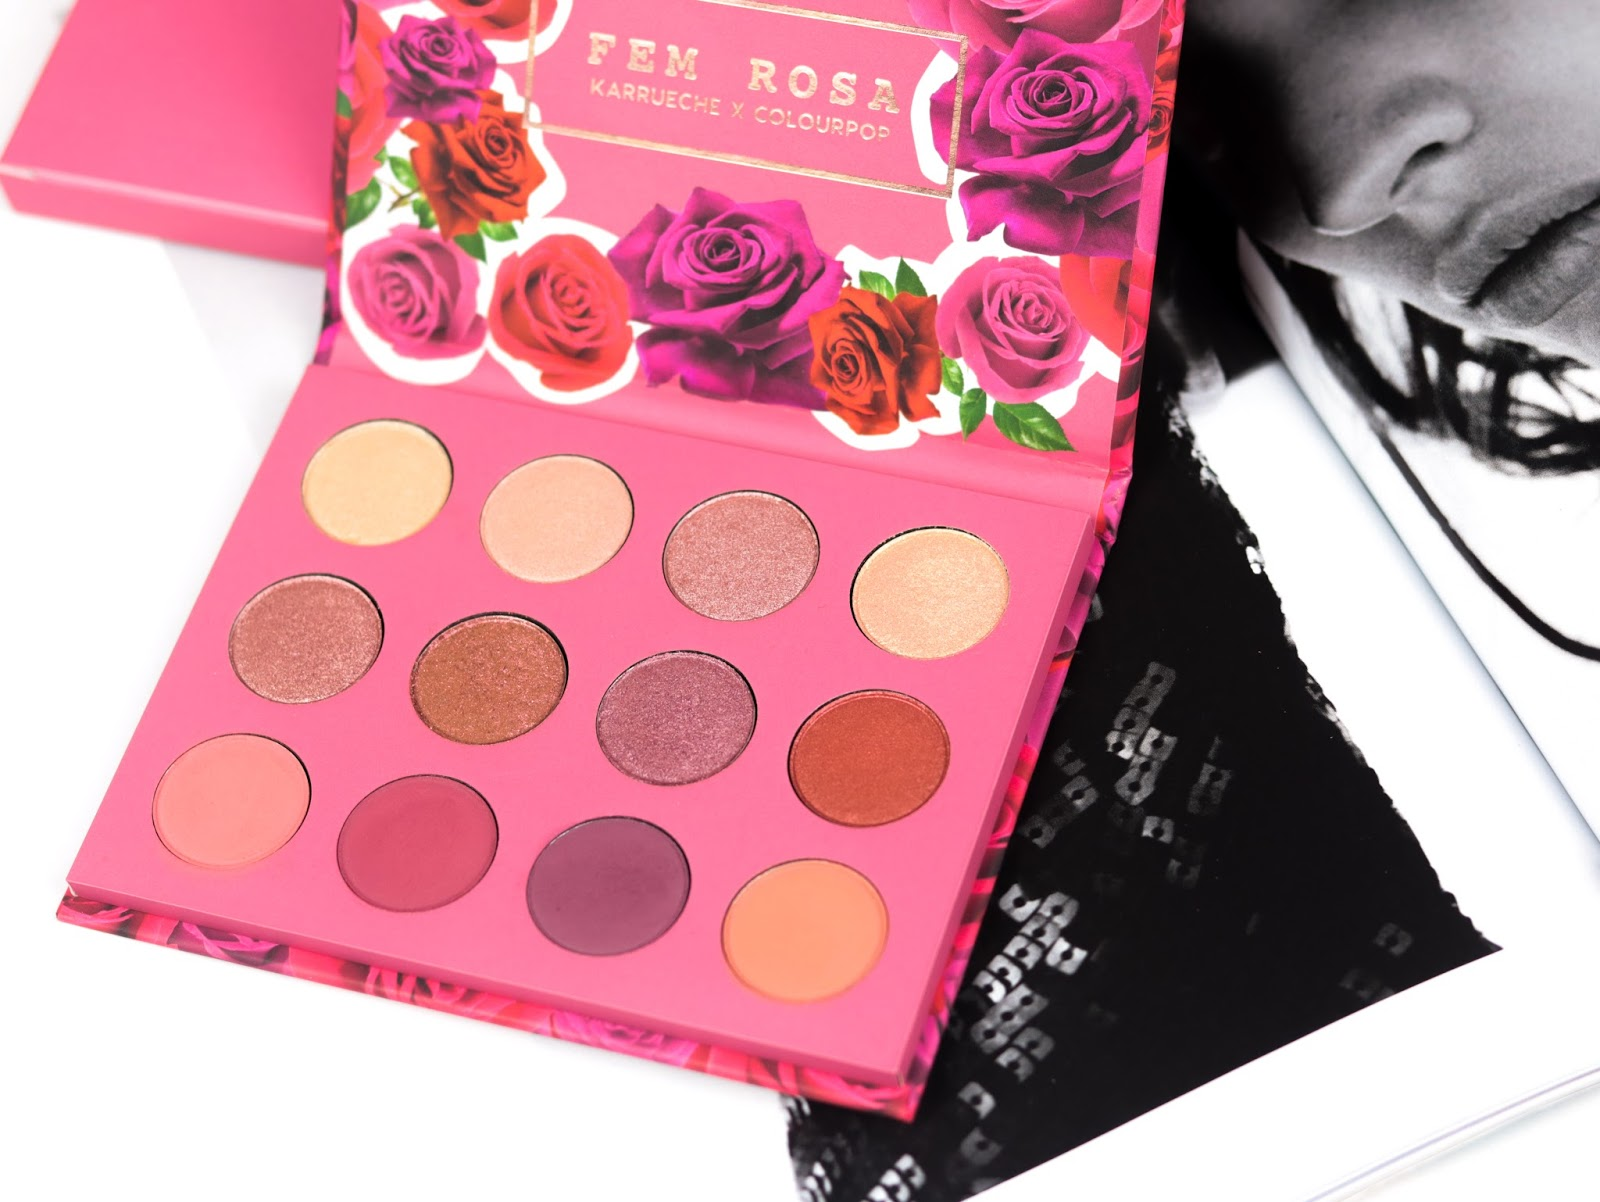 SHE Palette FEM ROSA Collection KARRUECHE X COLOURPOP Avis et swatch